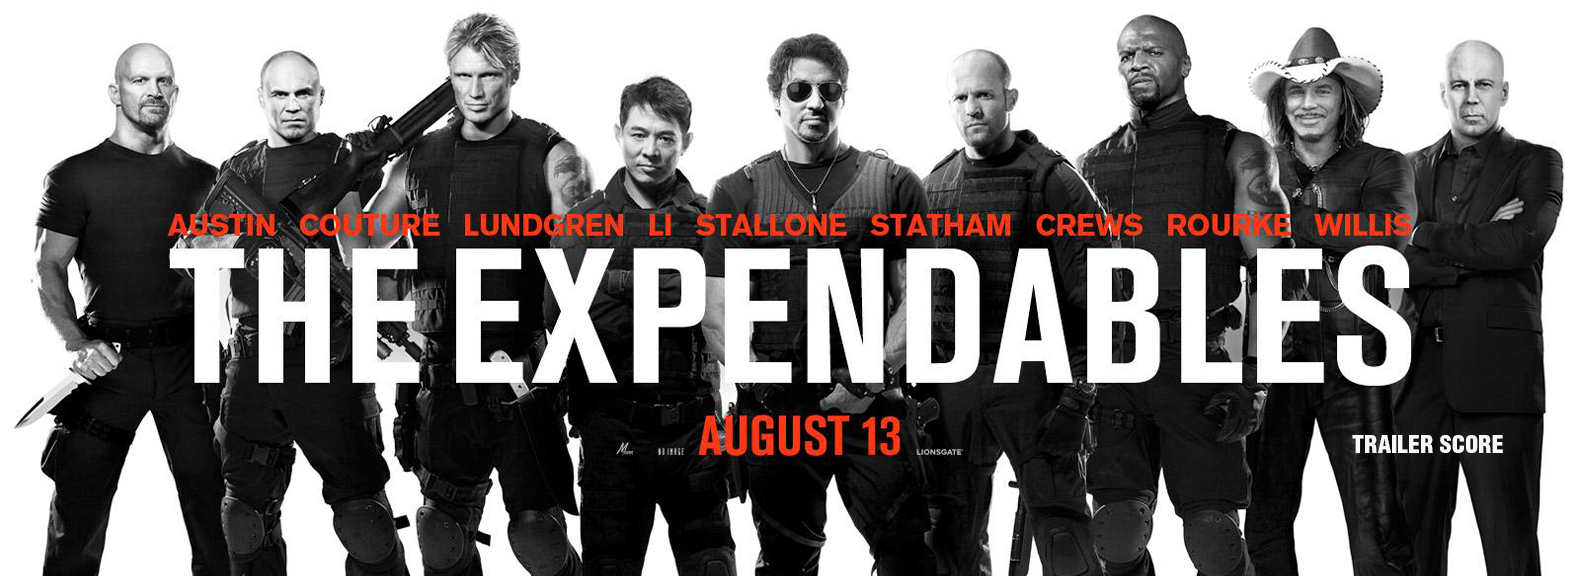 The Expendables with credit.jpg